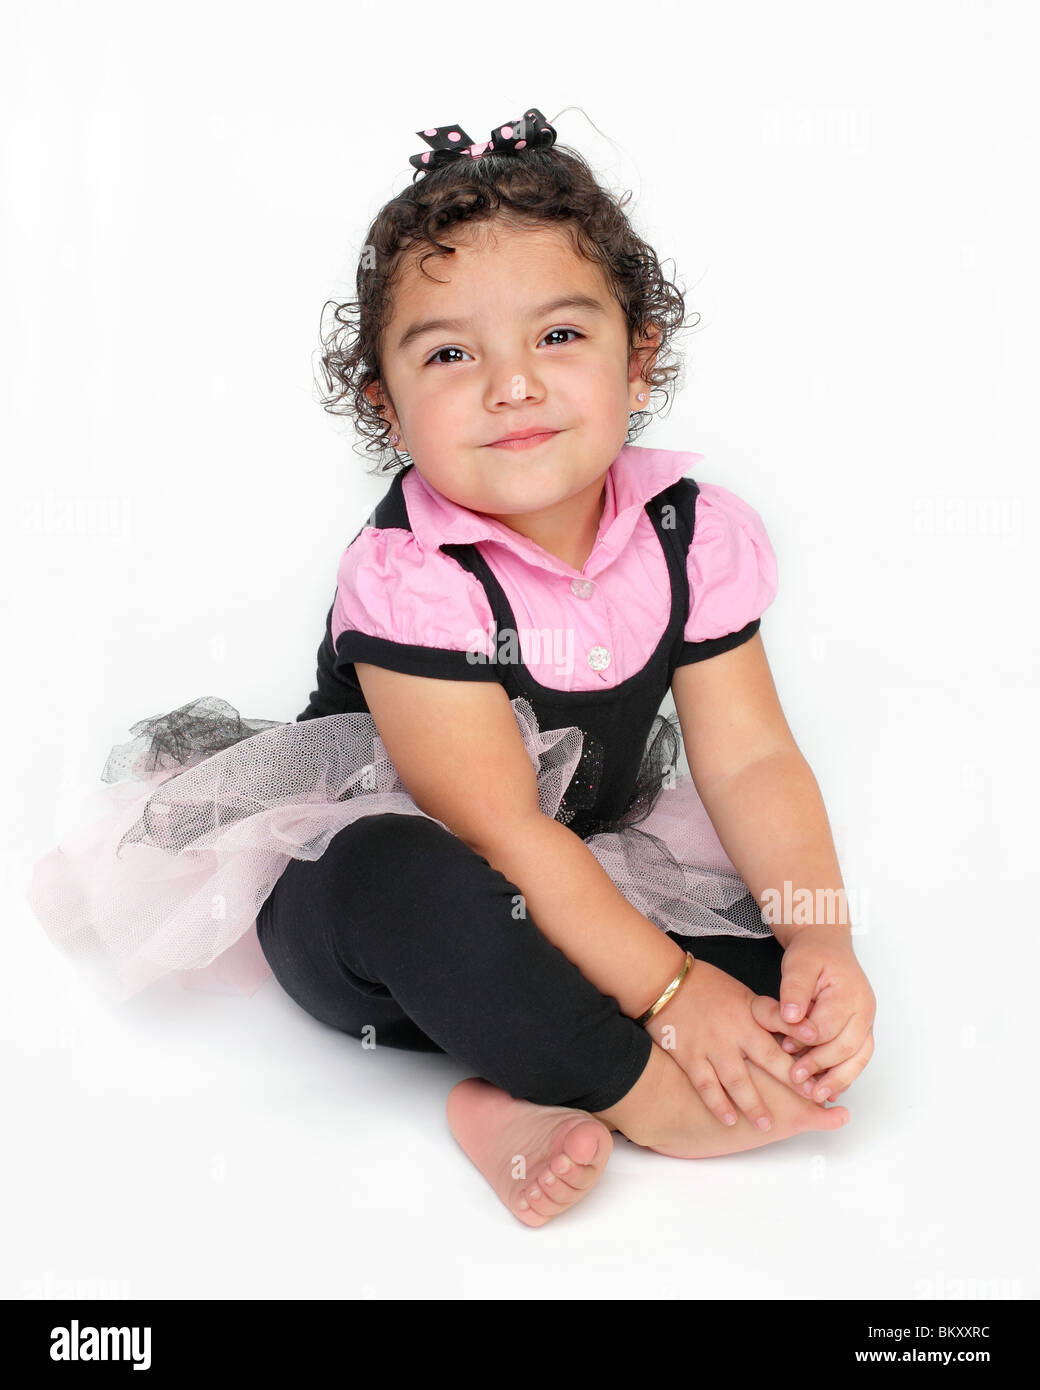 mexican girl stock photos & mexican girl stock images - alamy